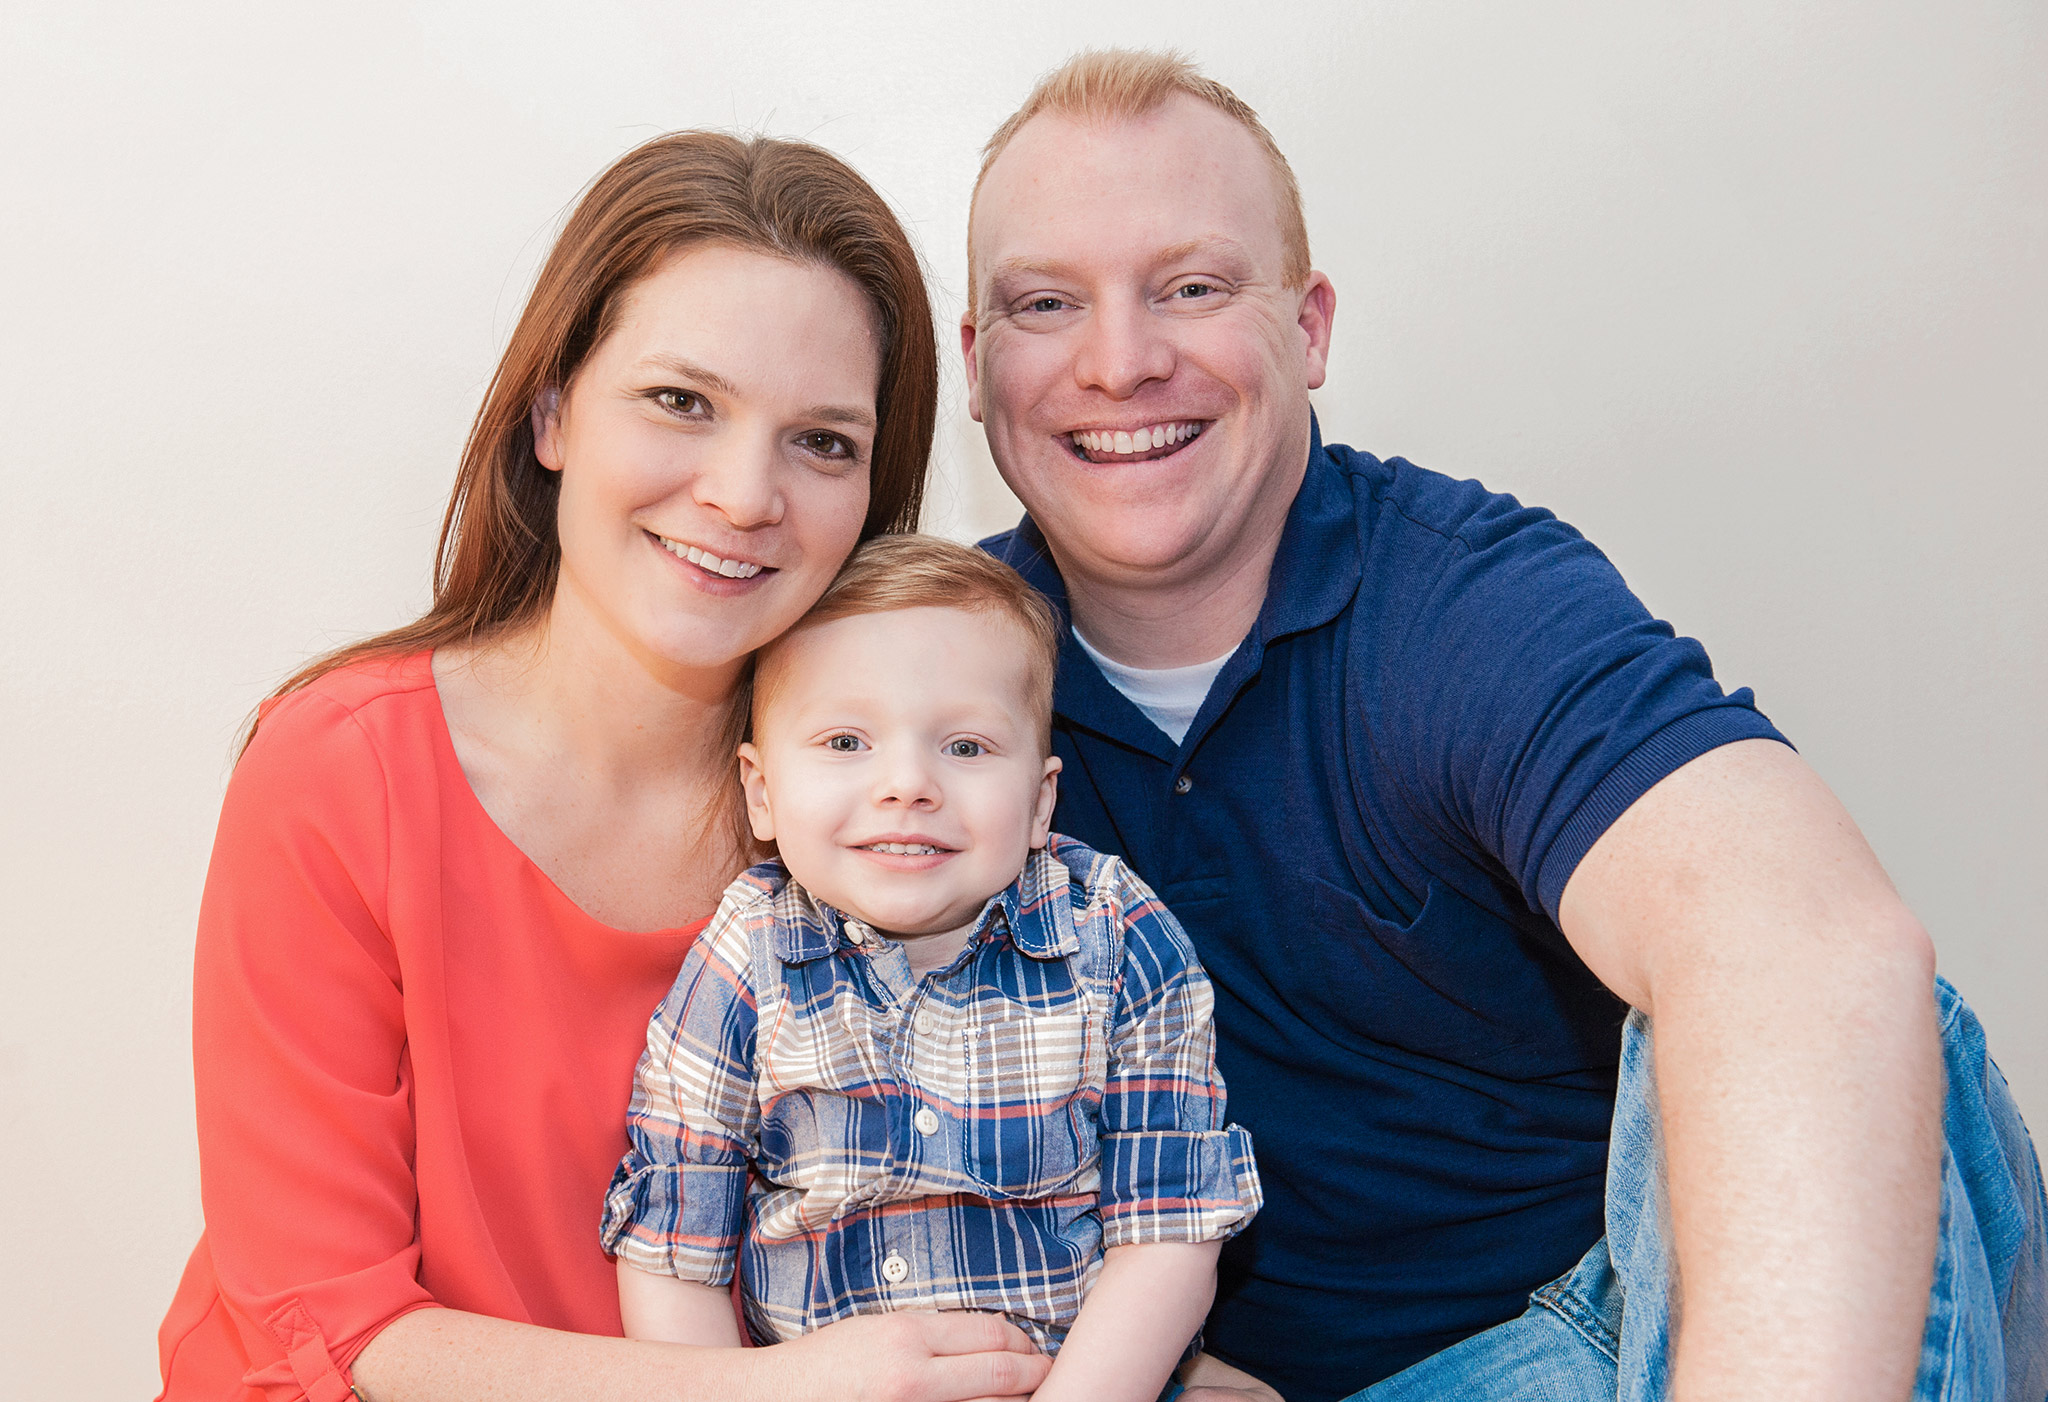 Katie and Mike with their son Will